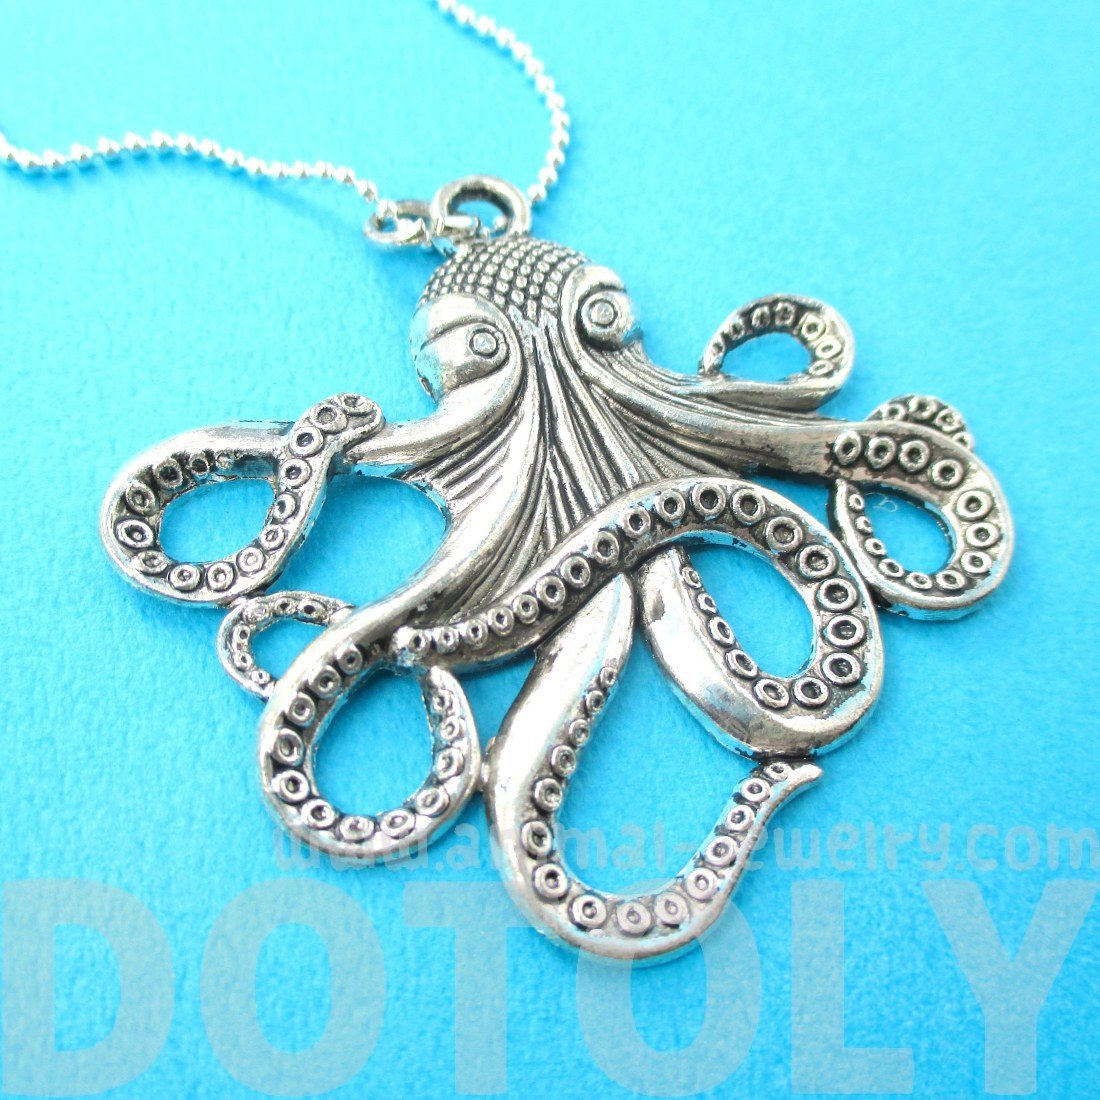 Realistic Octopus Kraken Sea Creature Pendant Necklace in Silver